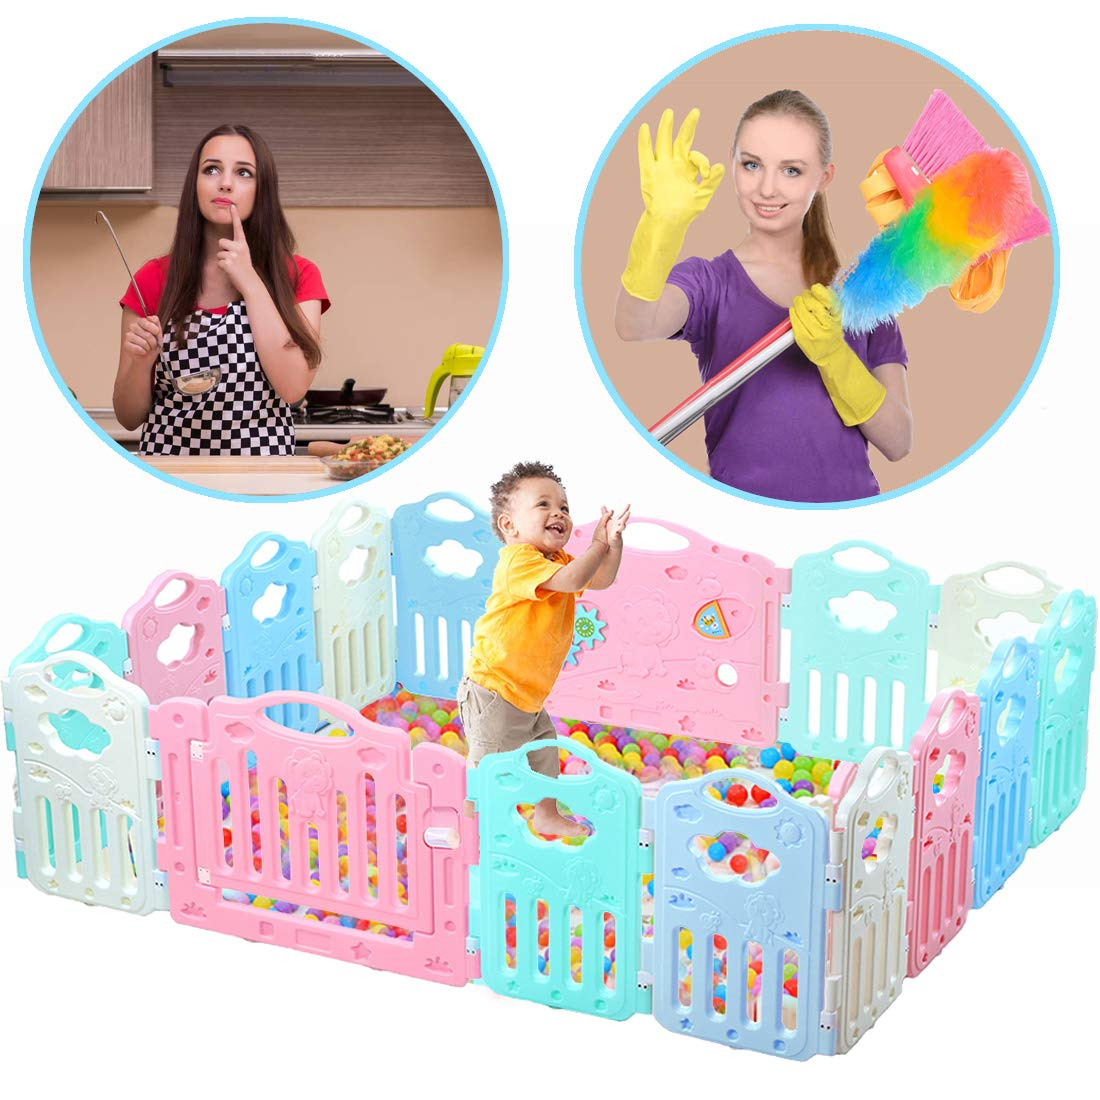 Baby Playpen Kids Activity Centre Safety Play Yard Safe Set 16 Panel Home Footloose Indoor Outdoor Multicolor Rubber Anti-Skid Fence Healthful Safety Design Learn Walk with Locked Door for 6 Months